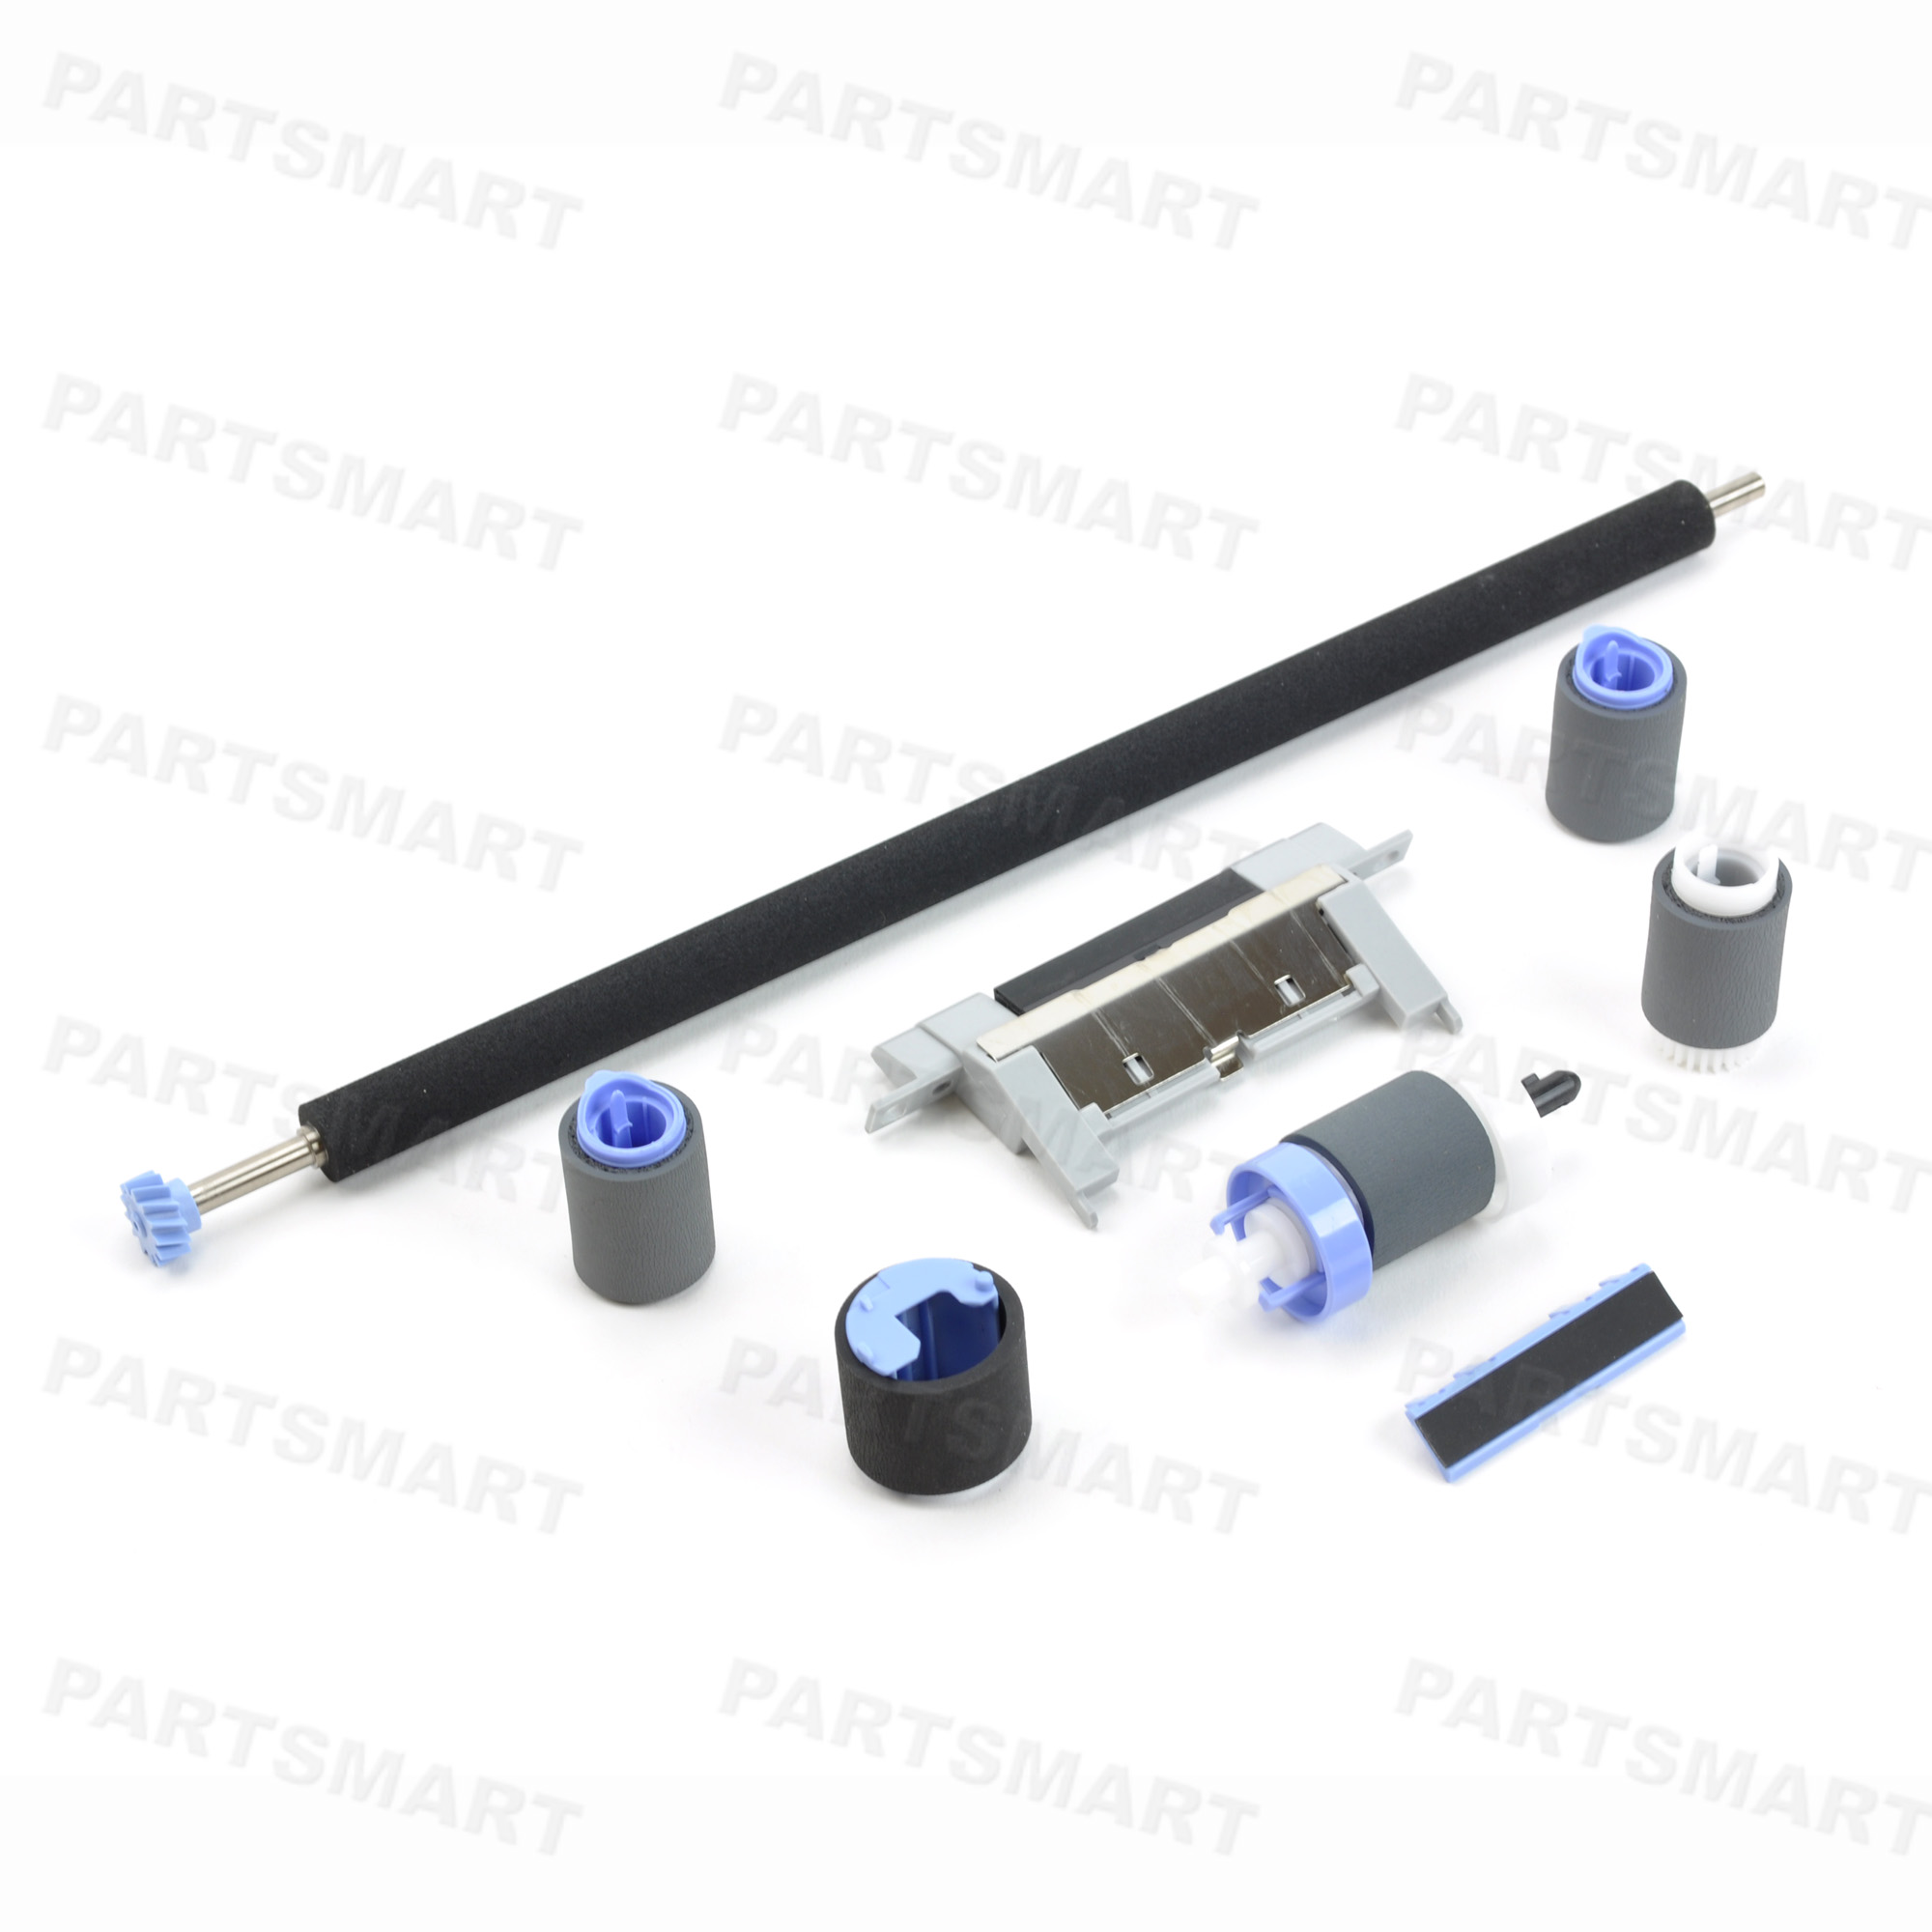 HP LaserJet 5  Preventive Maintenance Roller Kit RK-5 OEM Quality